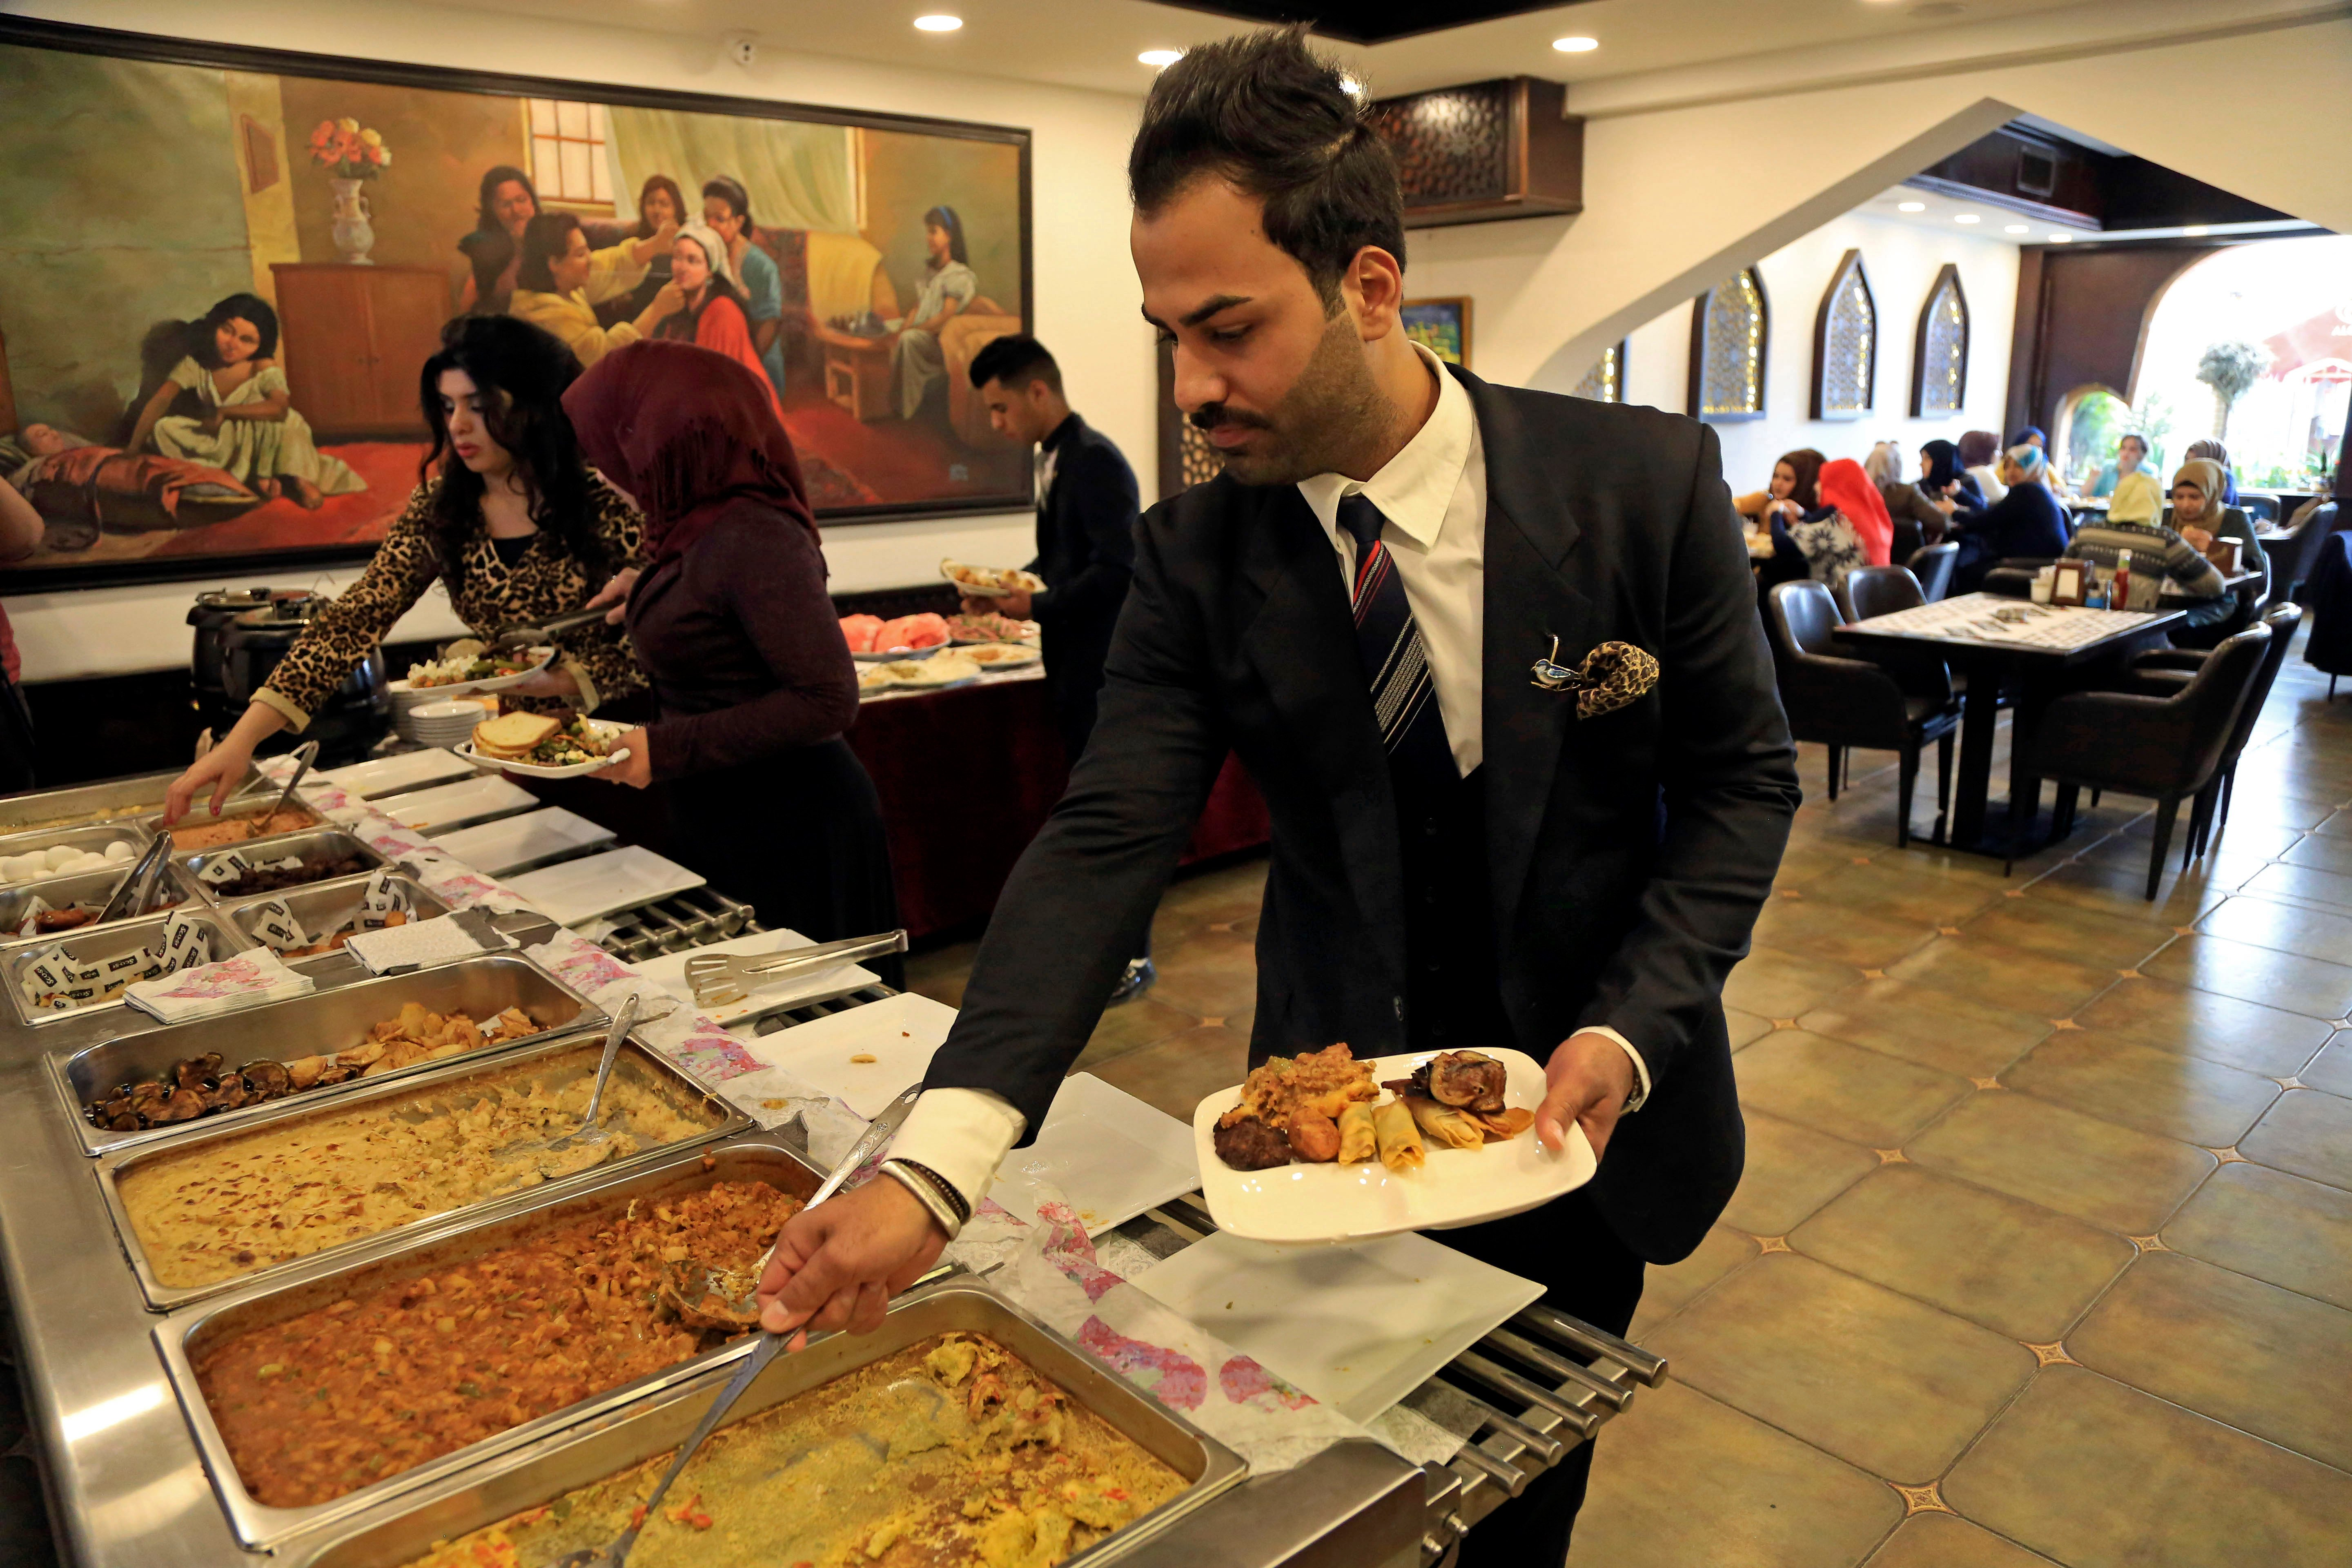 Many Iraqi entrepreneurs are finding restaurants and eateries a safe business bet, despite the country''s slumping economy, prevailing violence and an ongoing war with the Islamic State group. The Associated Press